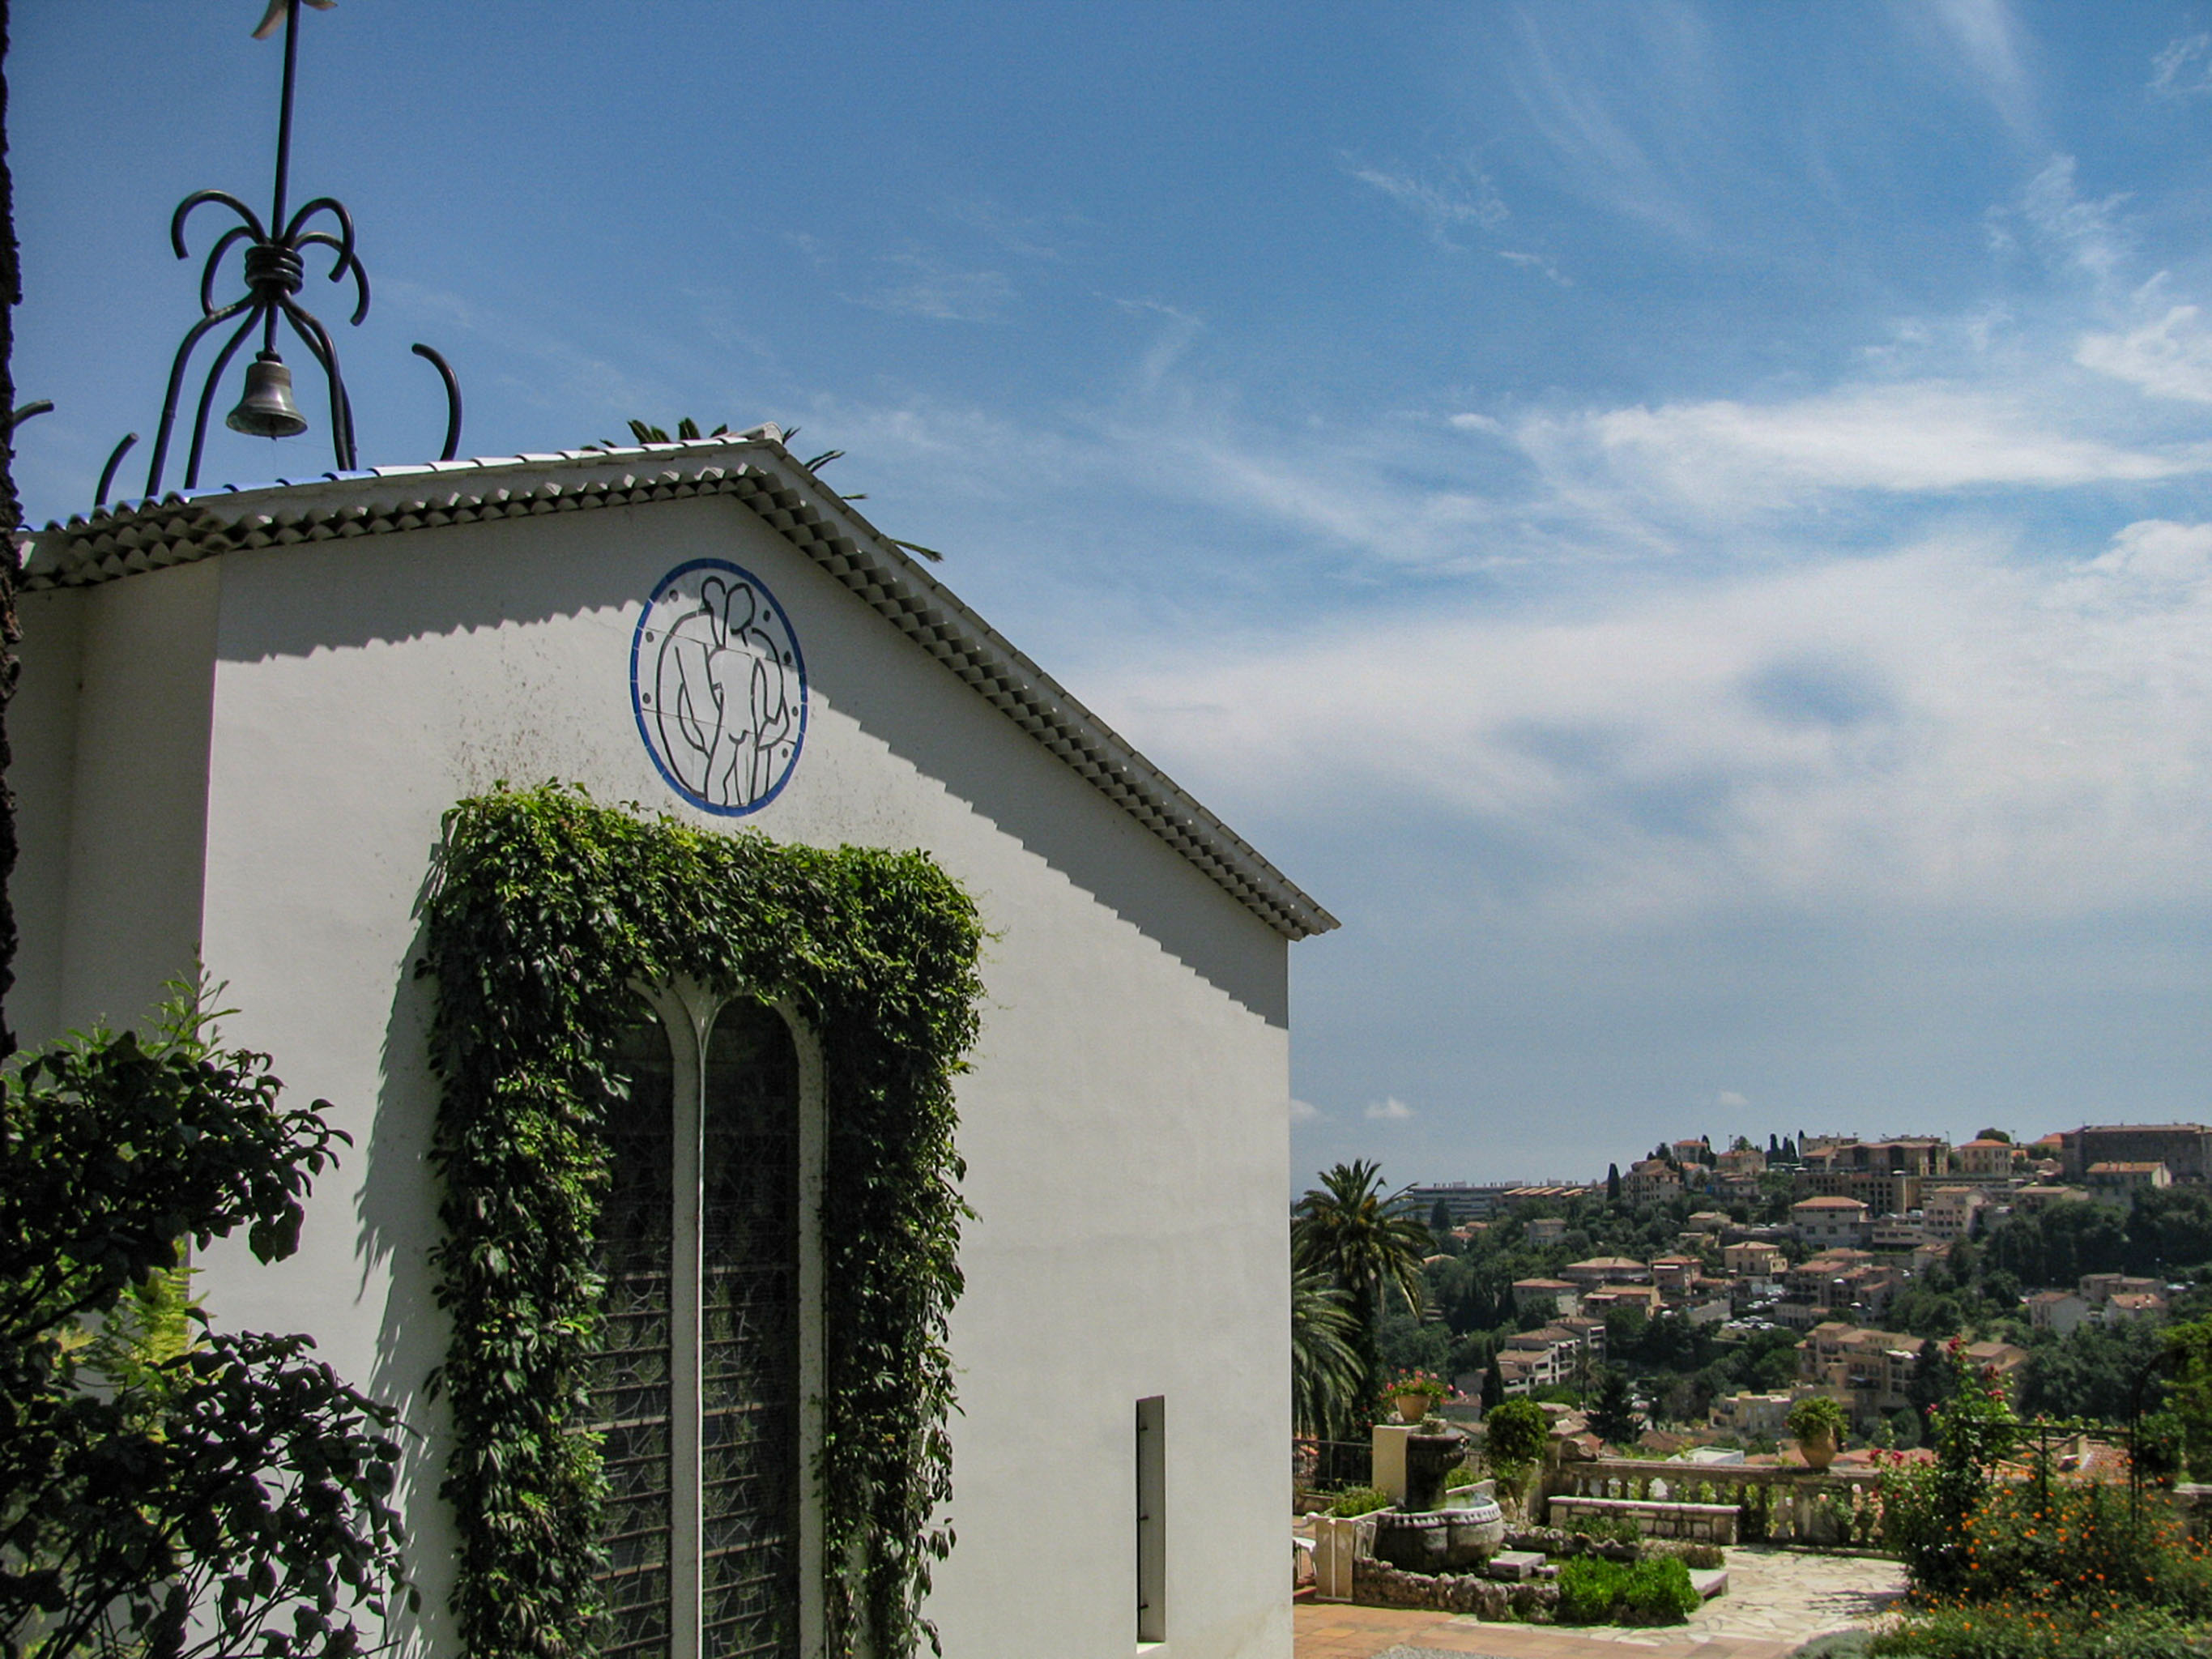 Chapel of the Rosary, designed by Henri Matisse in Vence, France.